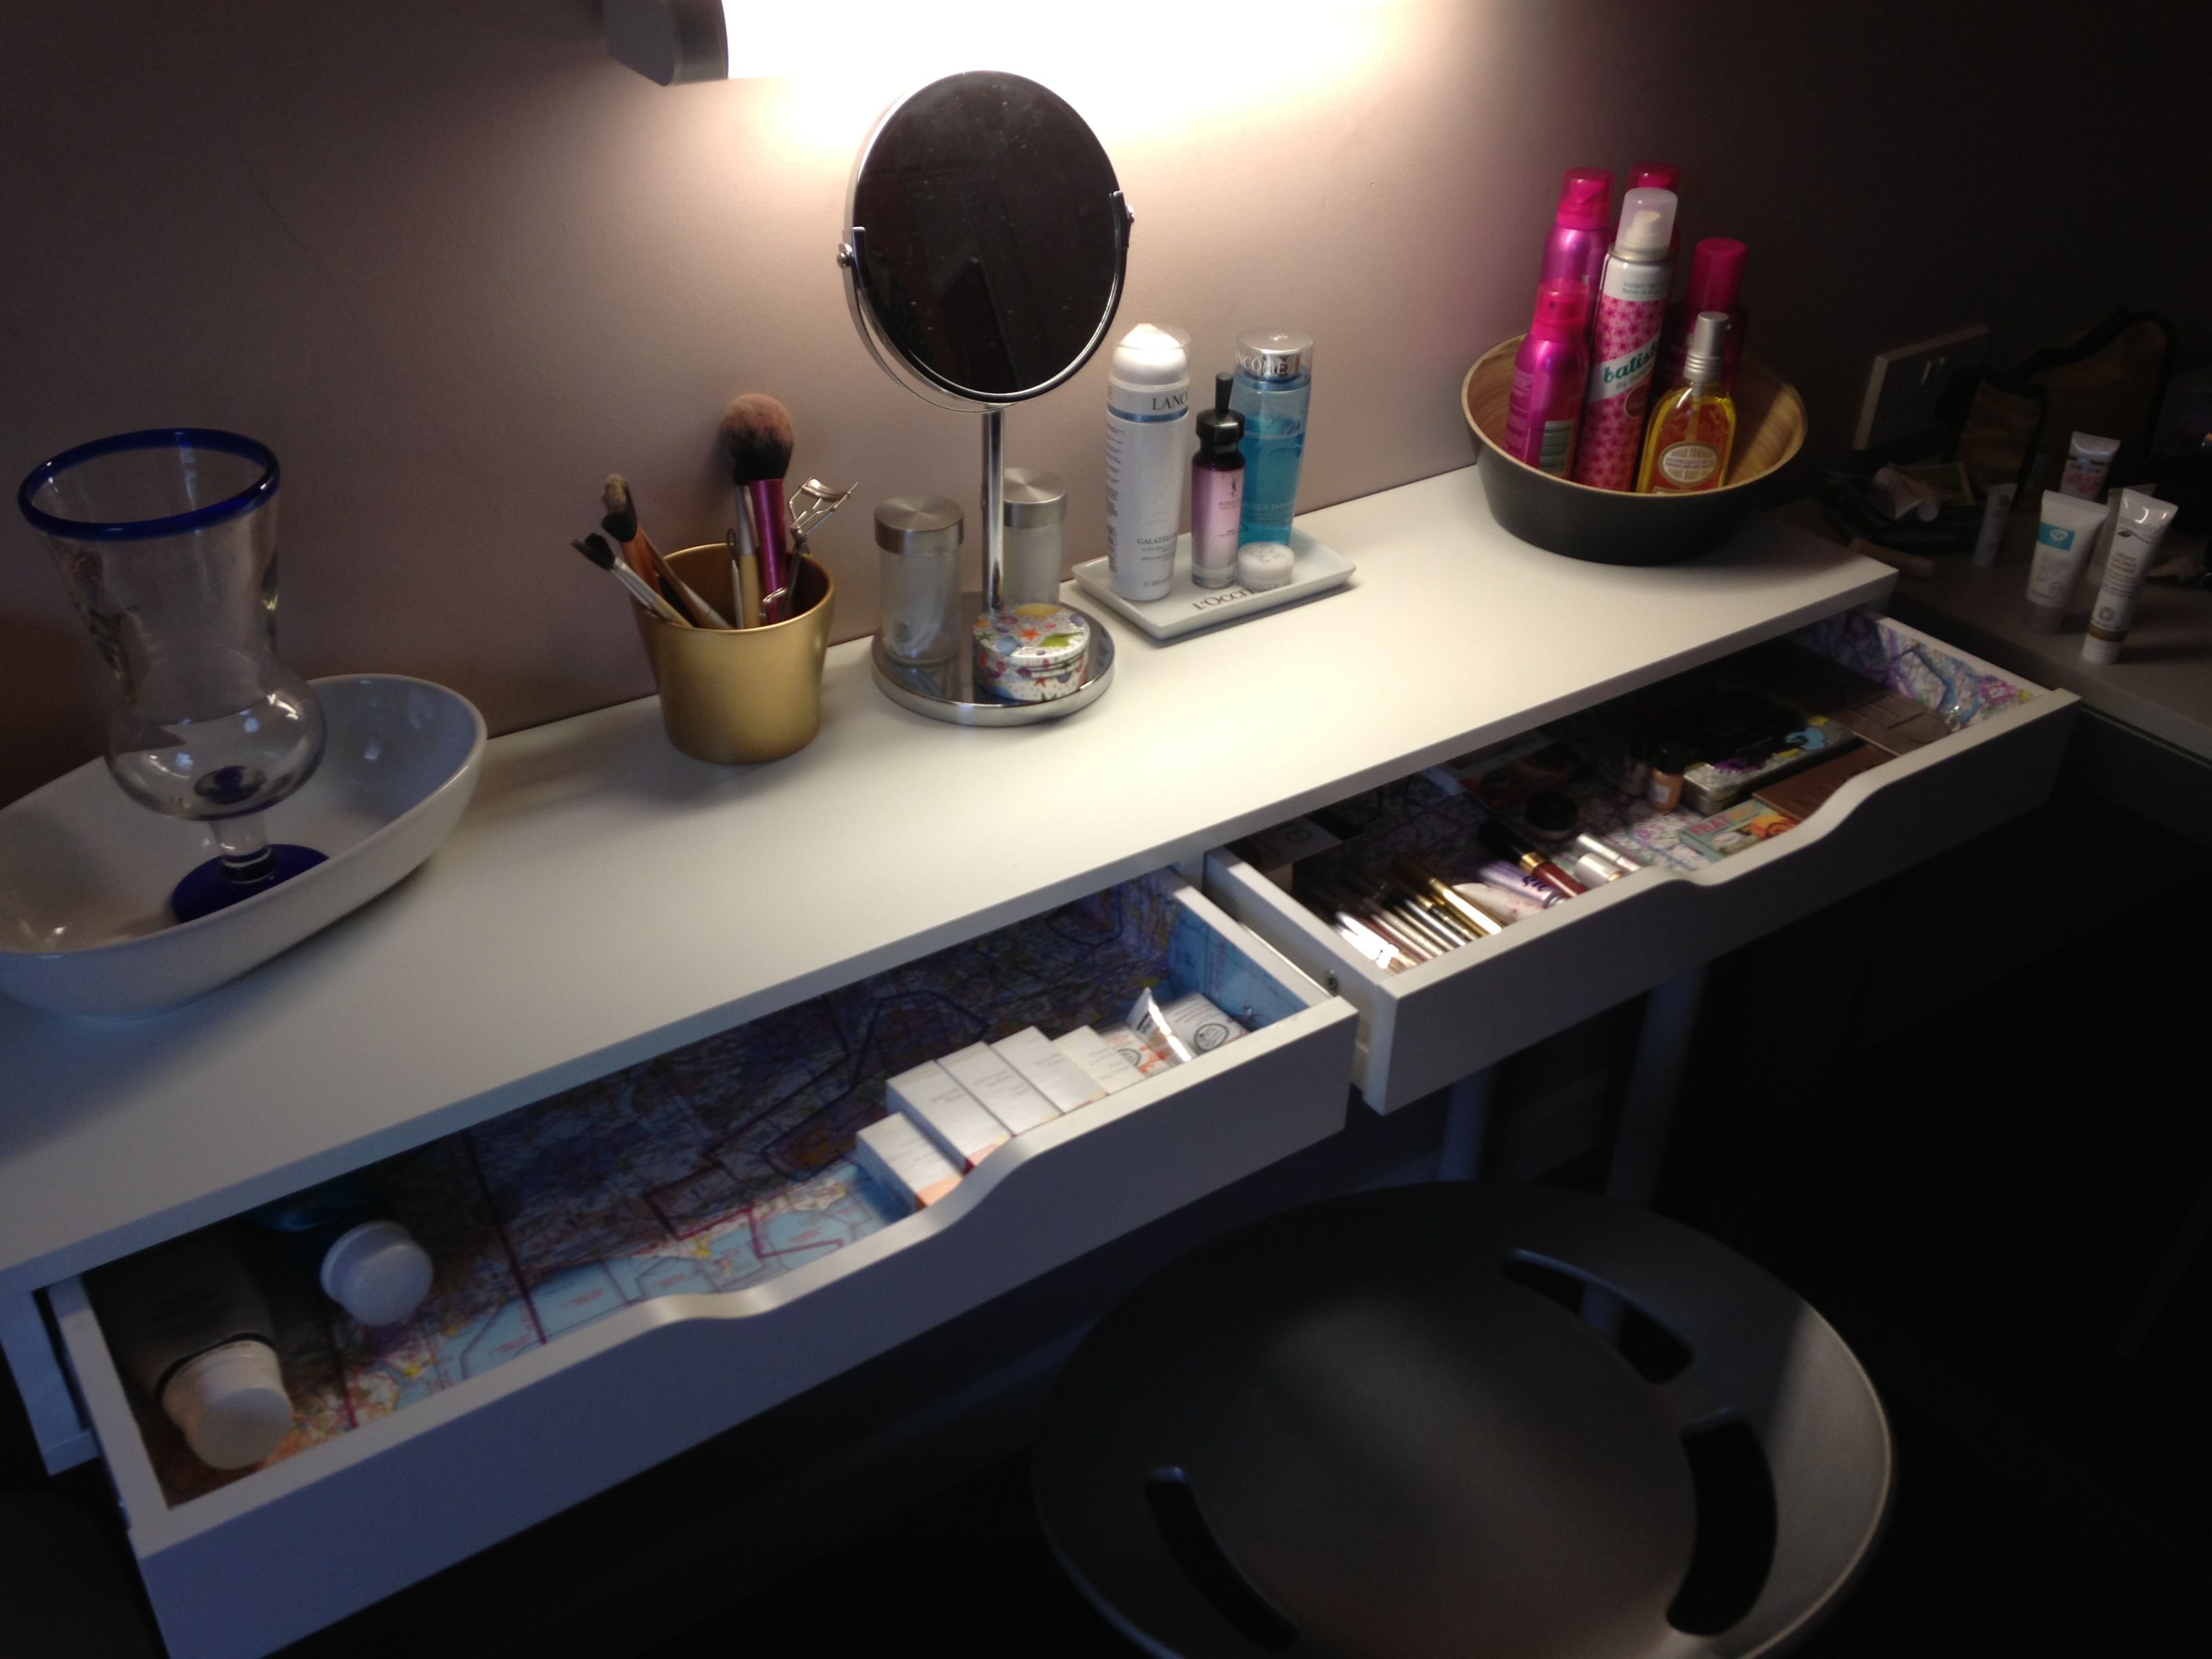 Coiffeuse ika stunning hemnes dressing table googlesuche with coiffeuse ika - Coiffeuse ikea occasion ...